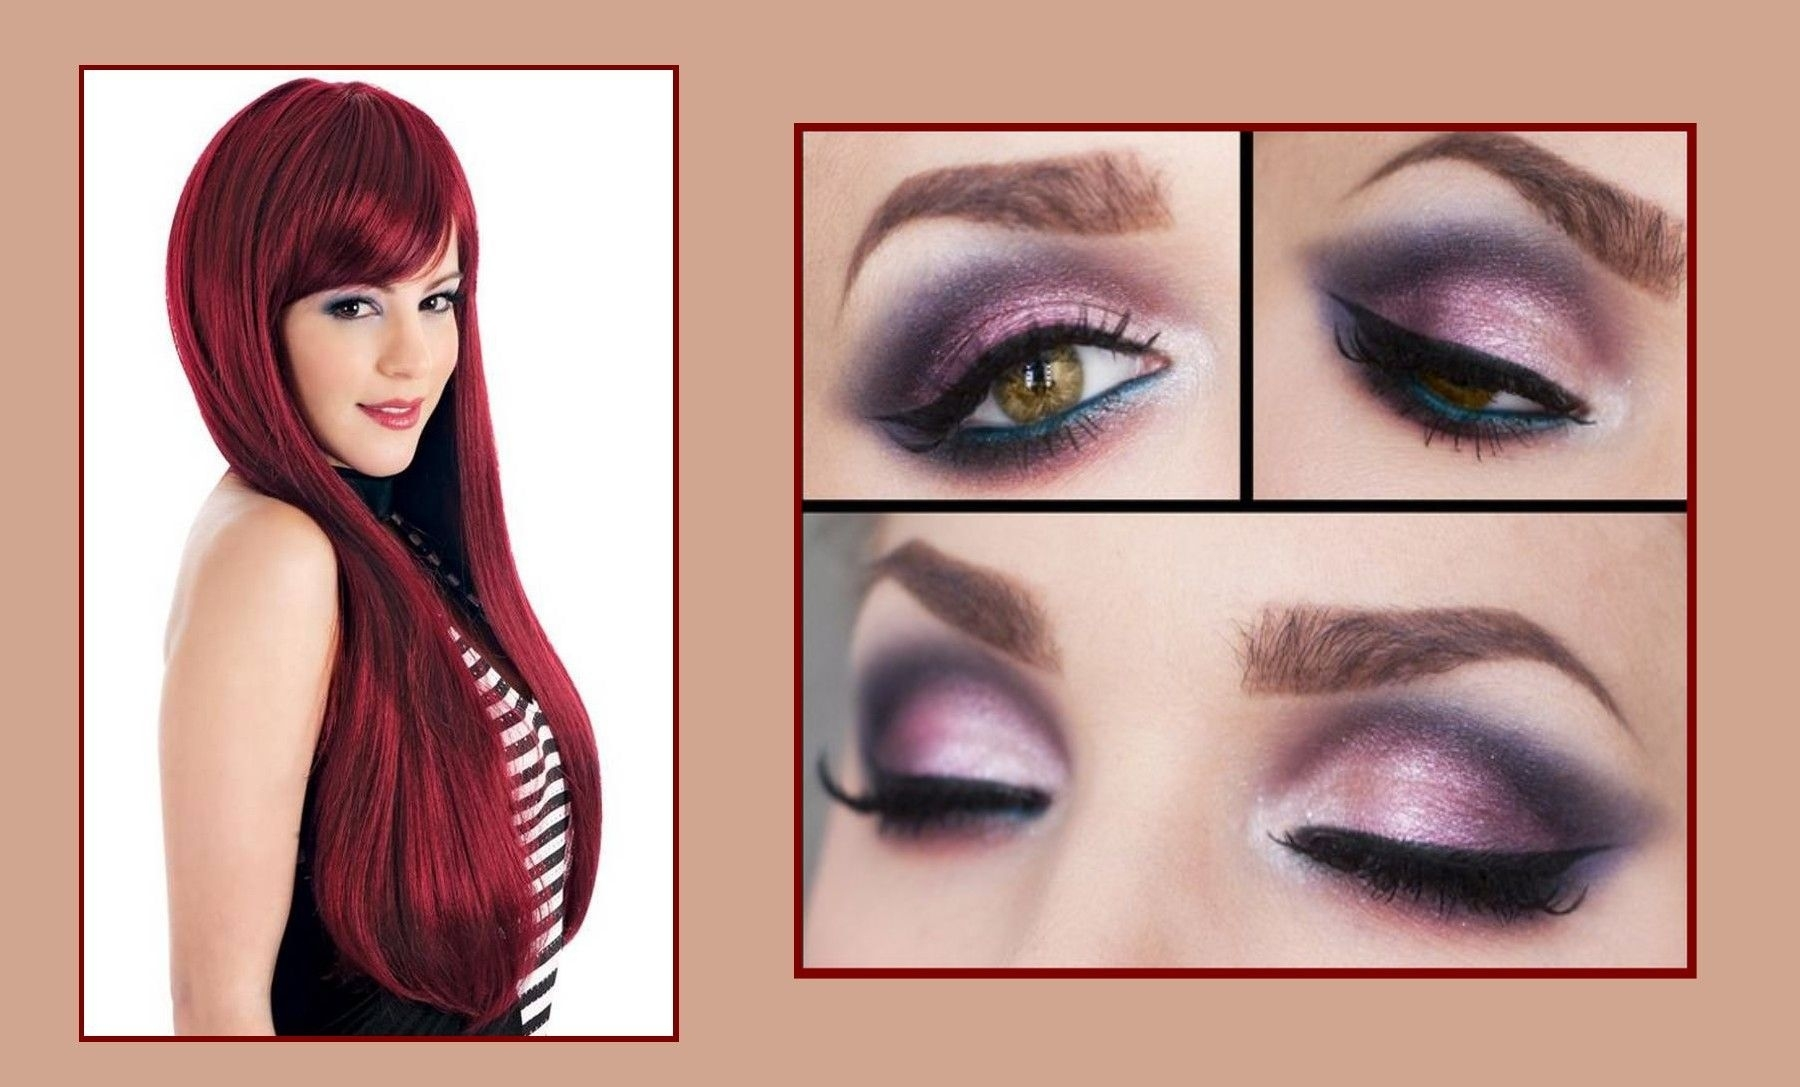 Eye Makeup For Hazel Eyes And Red Hair | Eye Makeup, Makeup with regard to How To Do Makeup For Hazel Eyes And Red Hair